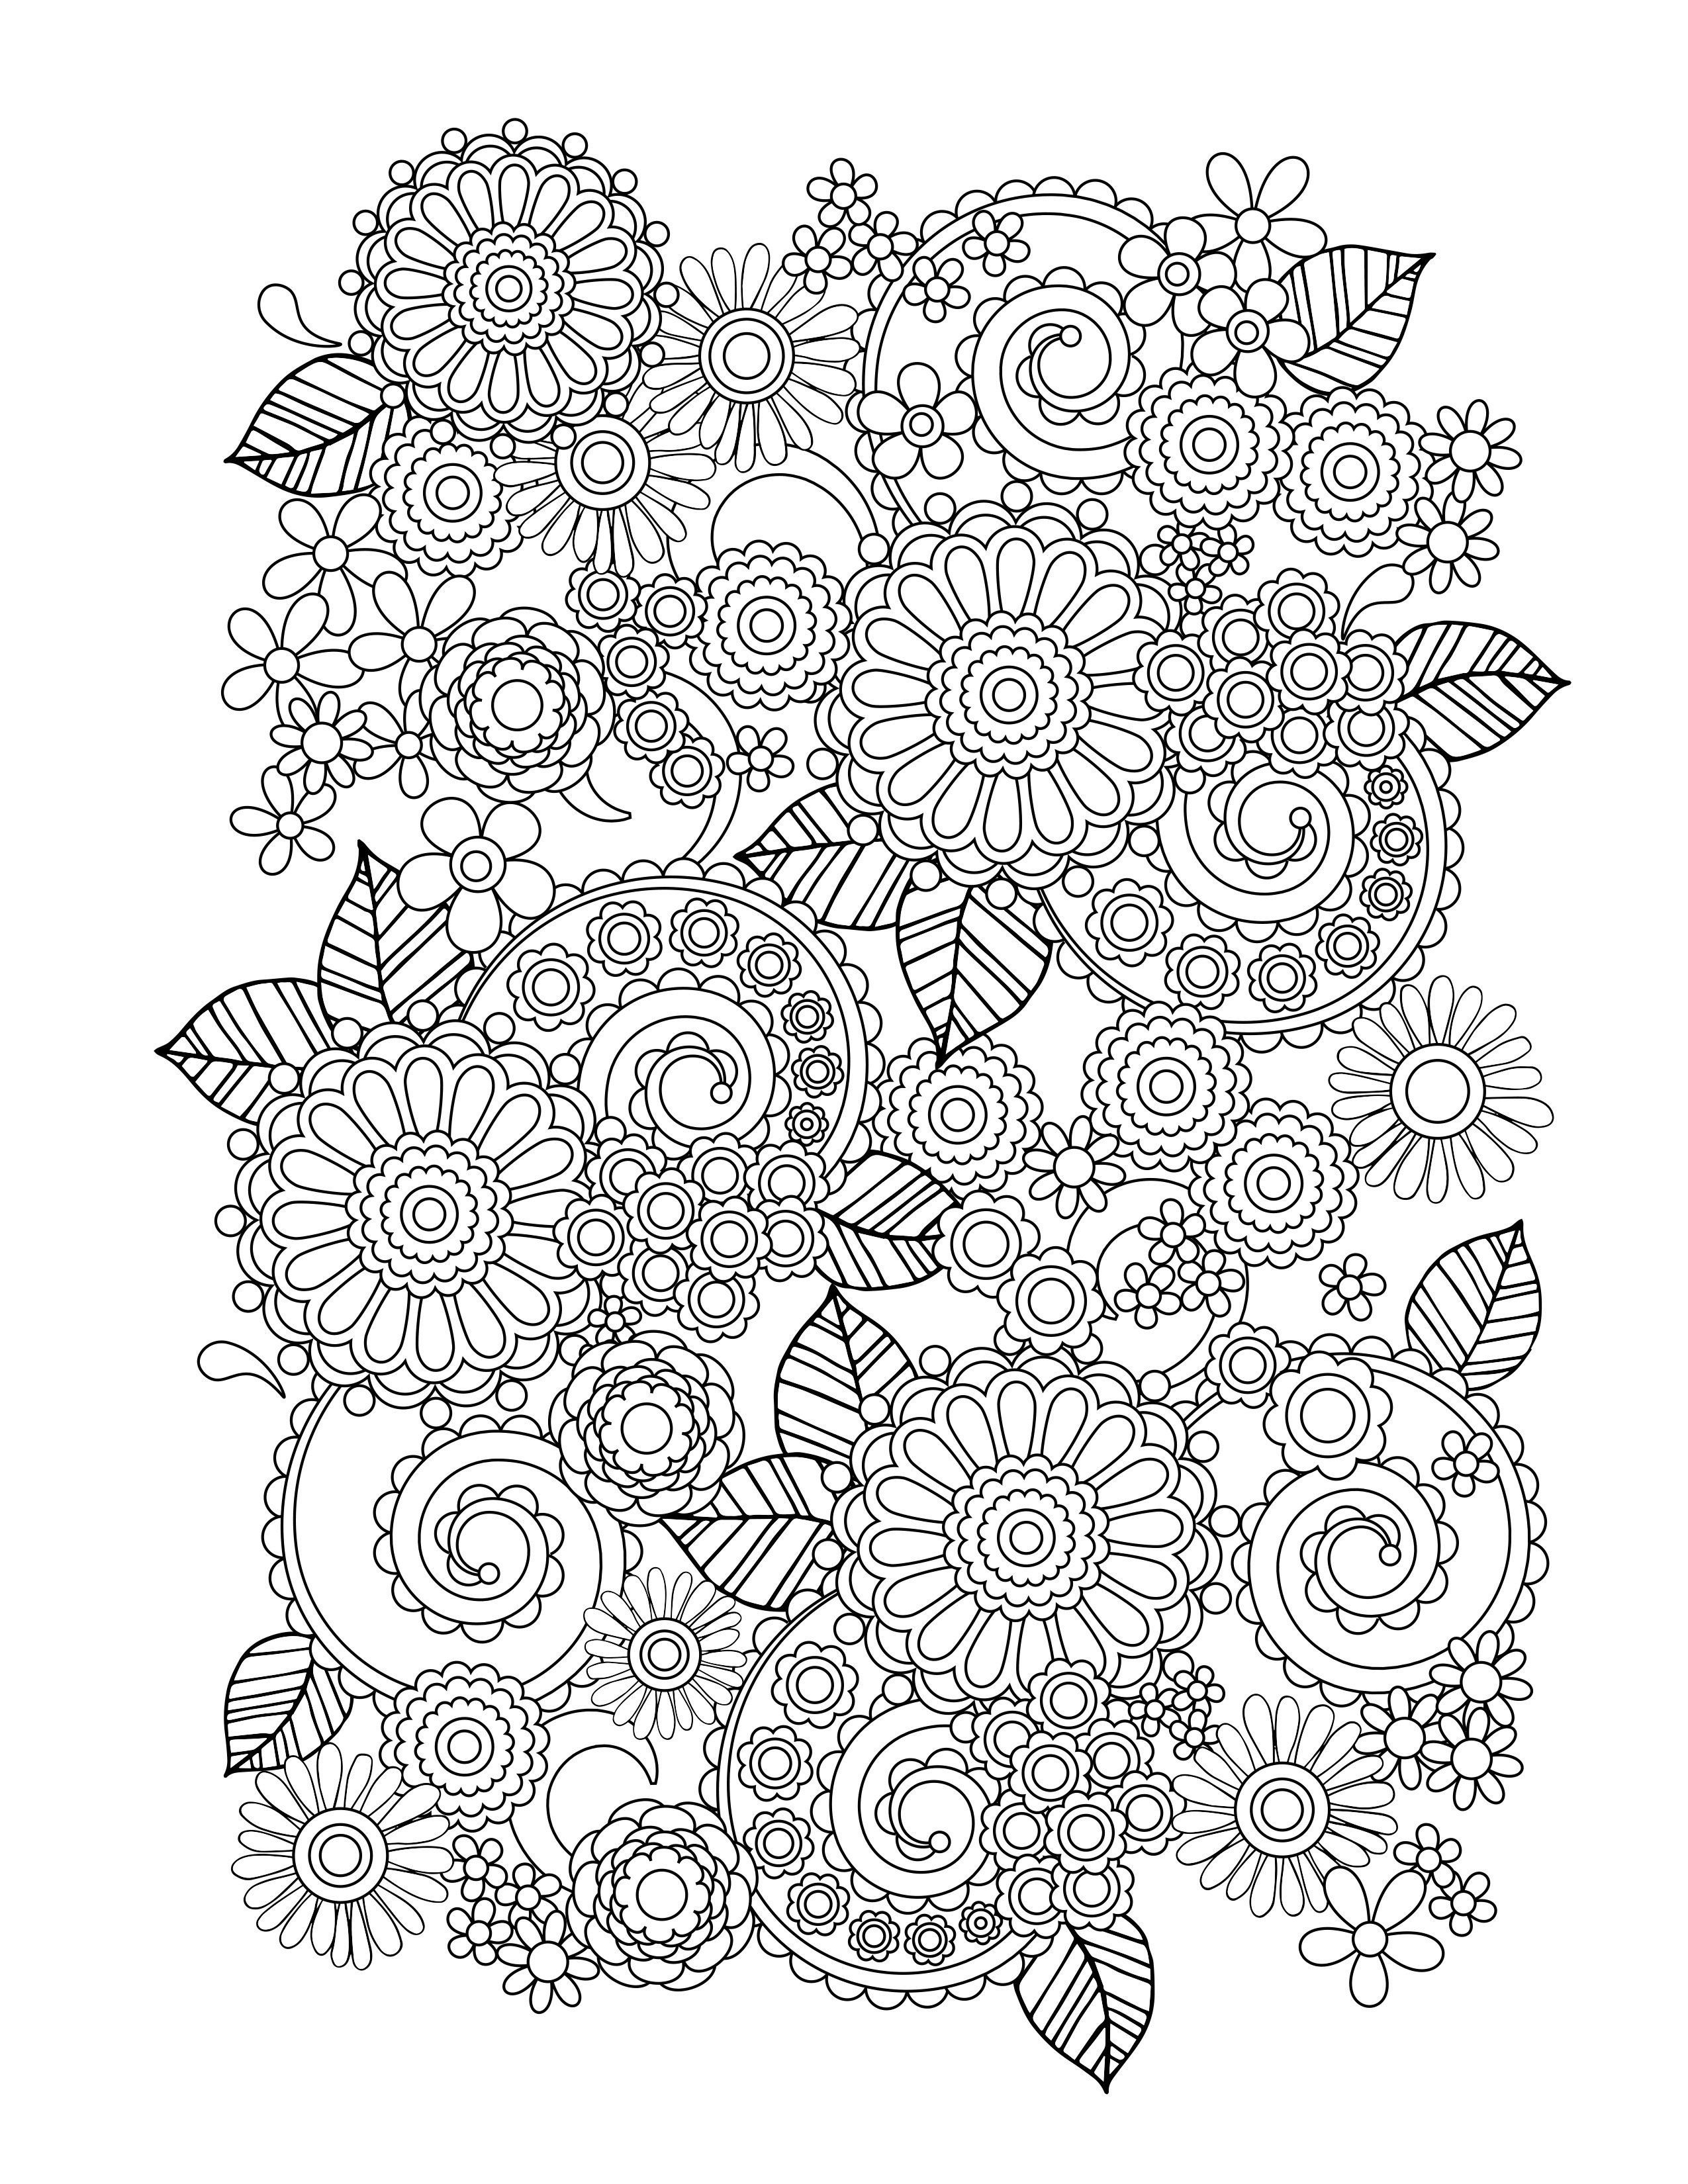 Flower Coloring Pages For Adults - Best Coloring Pages For Kids - Free Printable Flower Coloring Pages For Adults